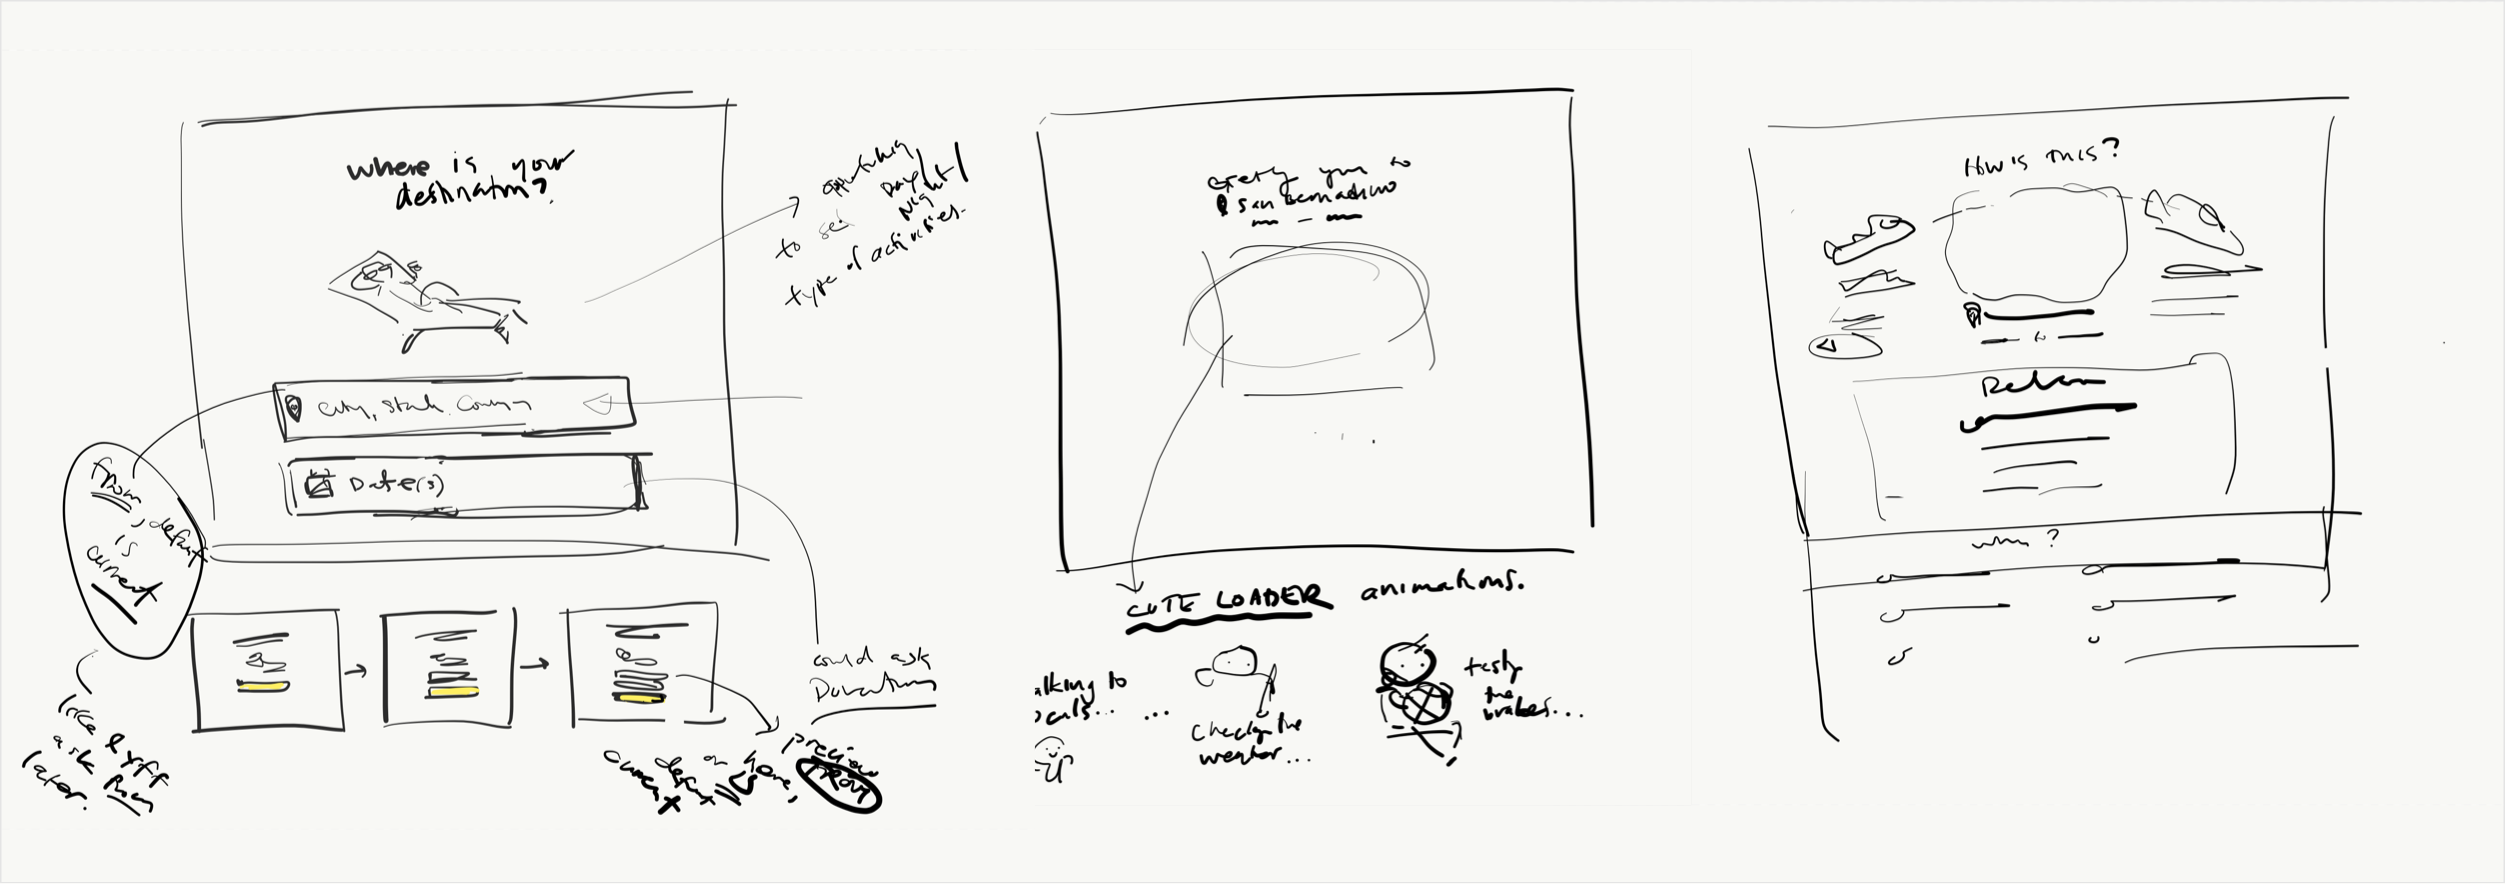 Sketches of the three app screens: Input UI, Loading, and Results.